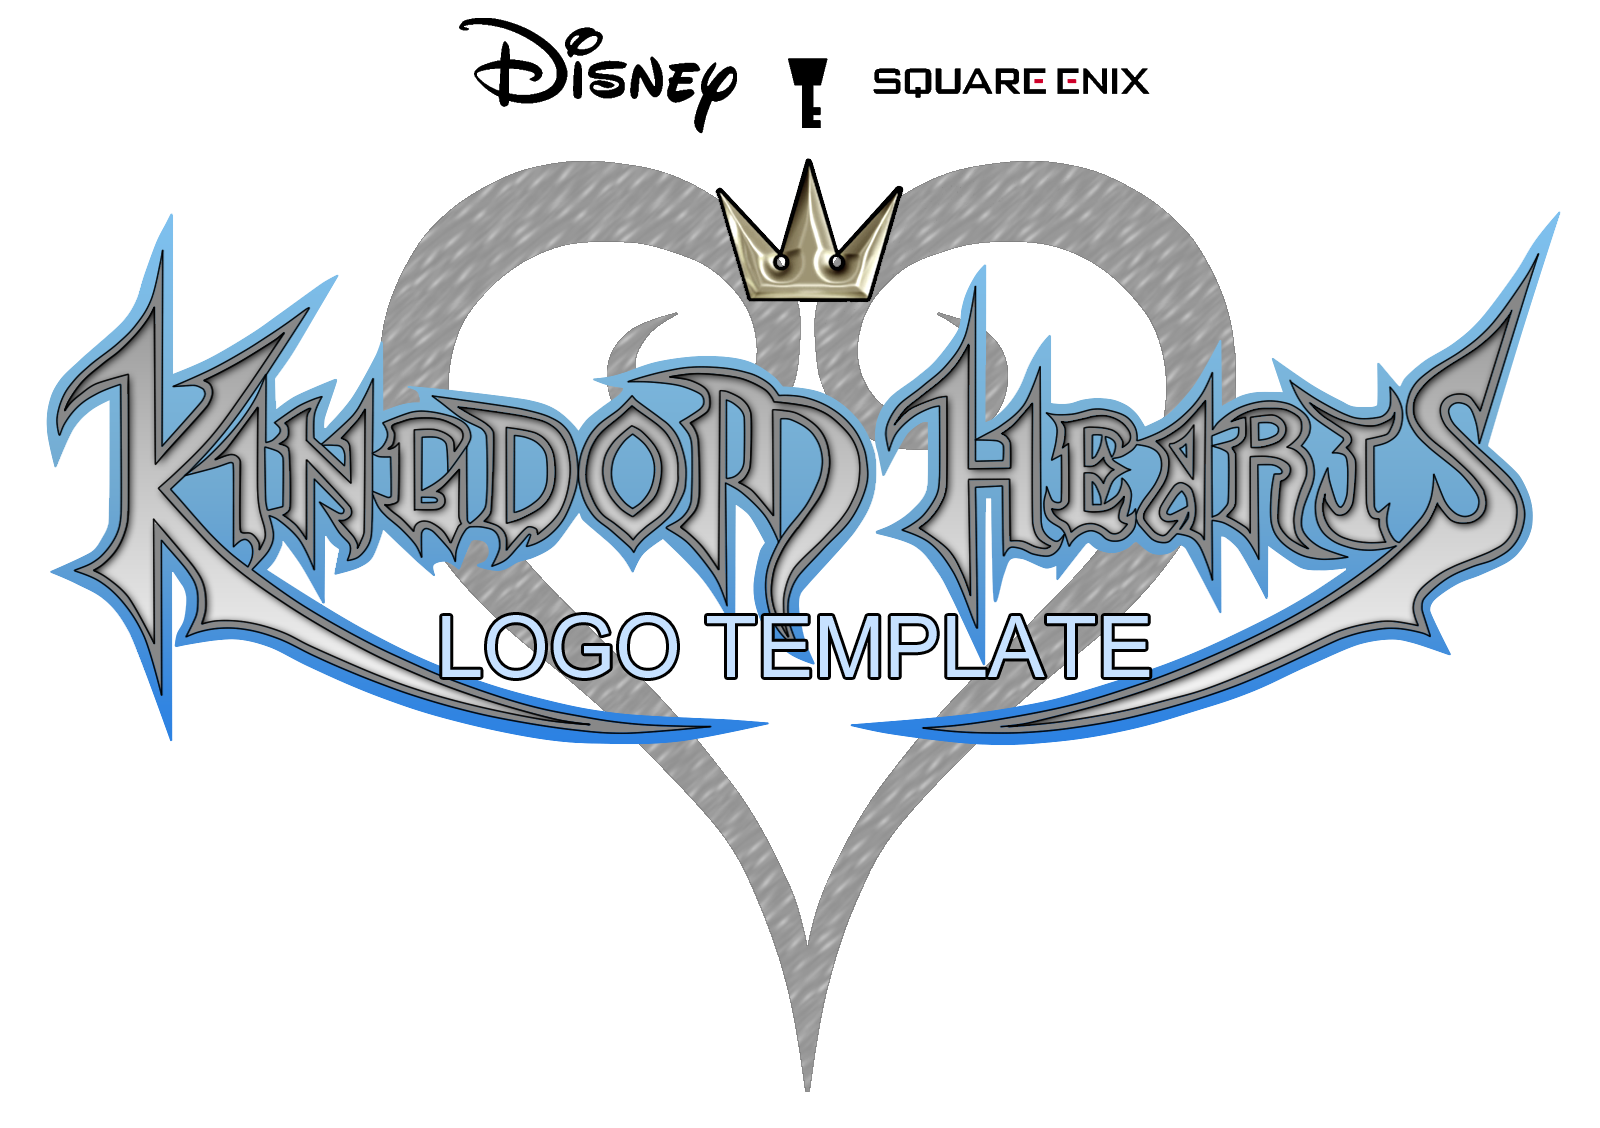 Kingdom Hearts Logo Template By Digitaleva On Deviantart Disney kingdom hearts sword pewter key ring $8.18. kingdom hearts logo template by